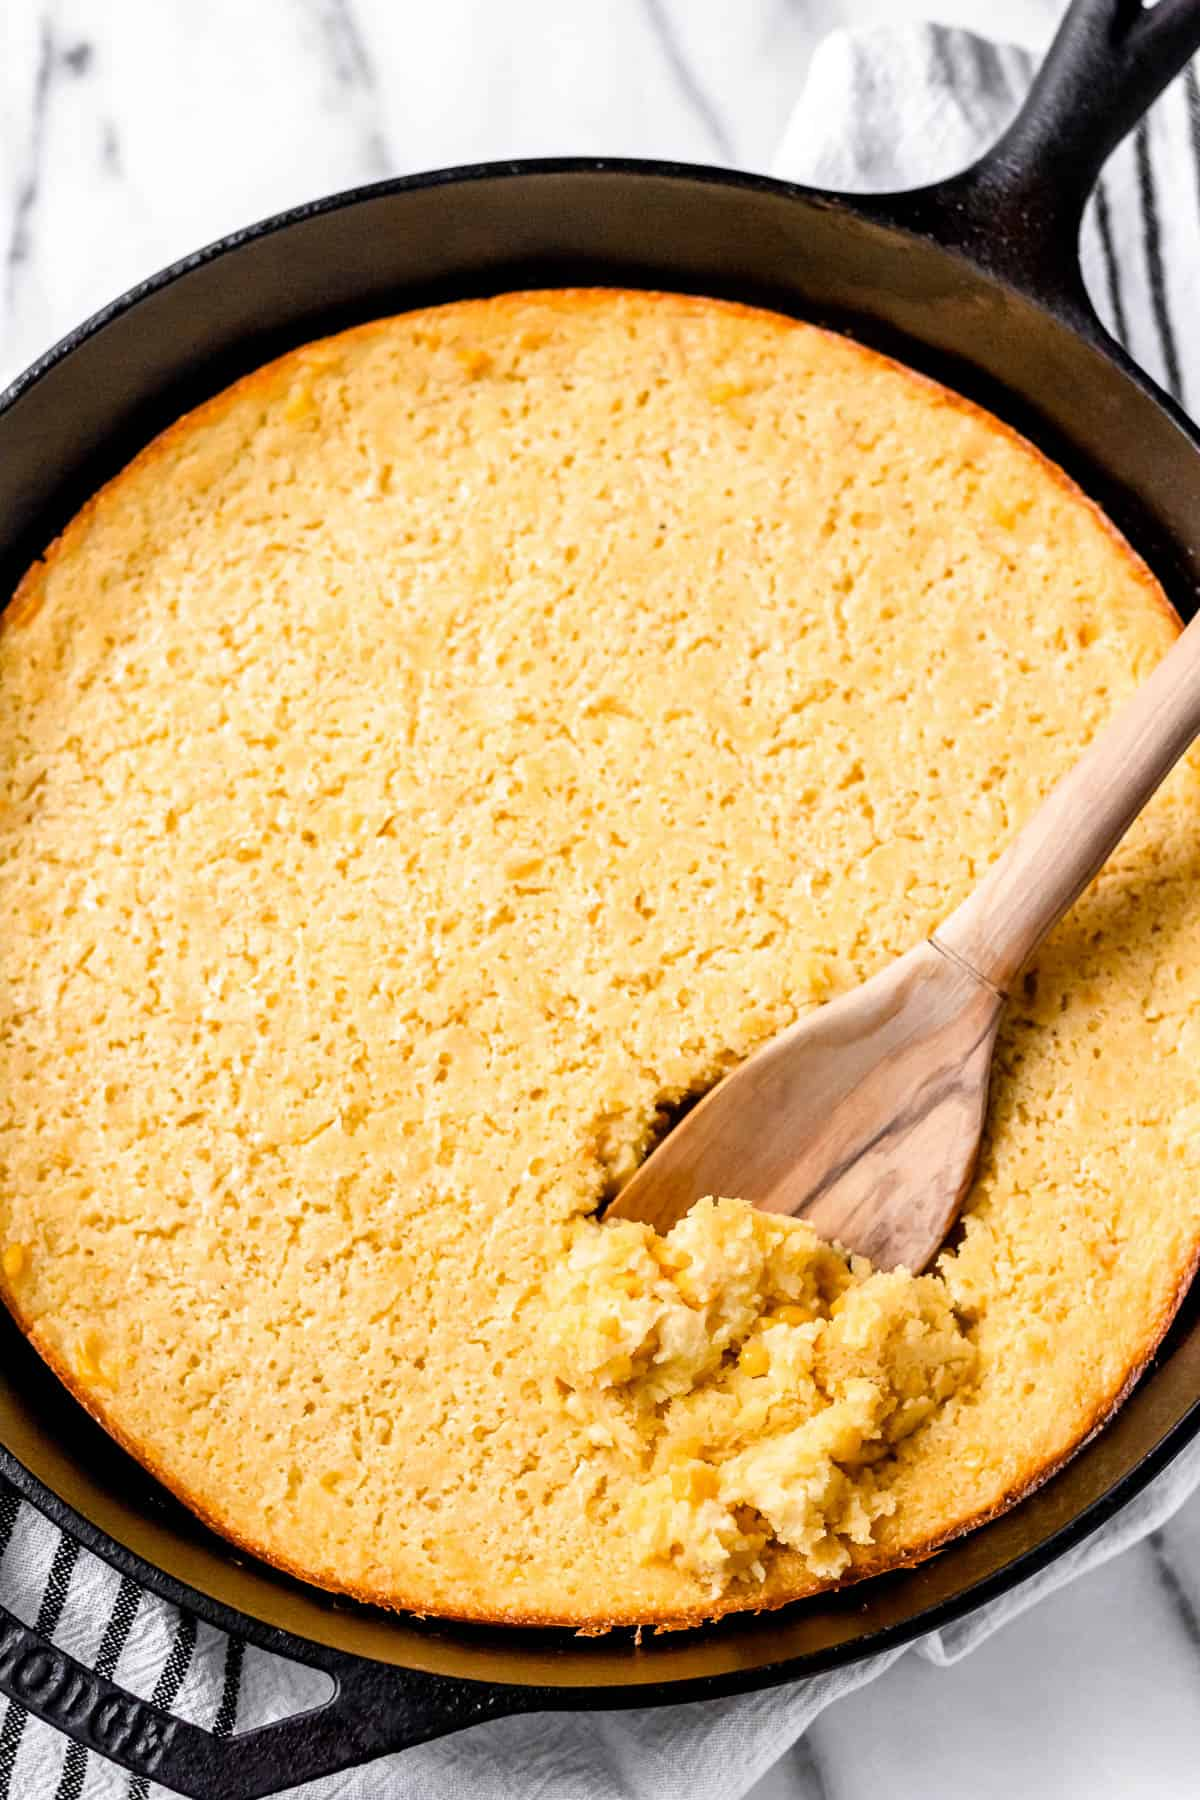 Corn soufflé being scooped up with a wood spoon in a cast iron skillet